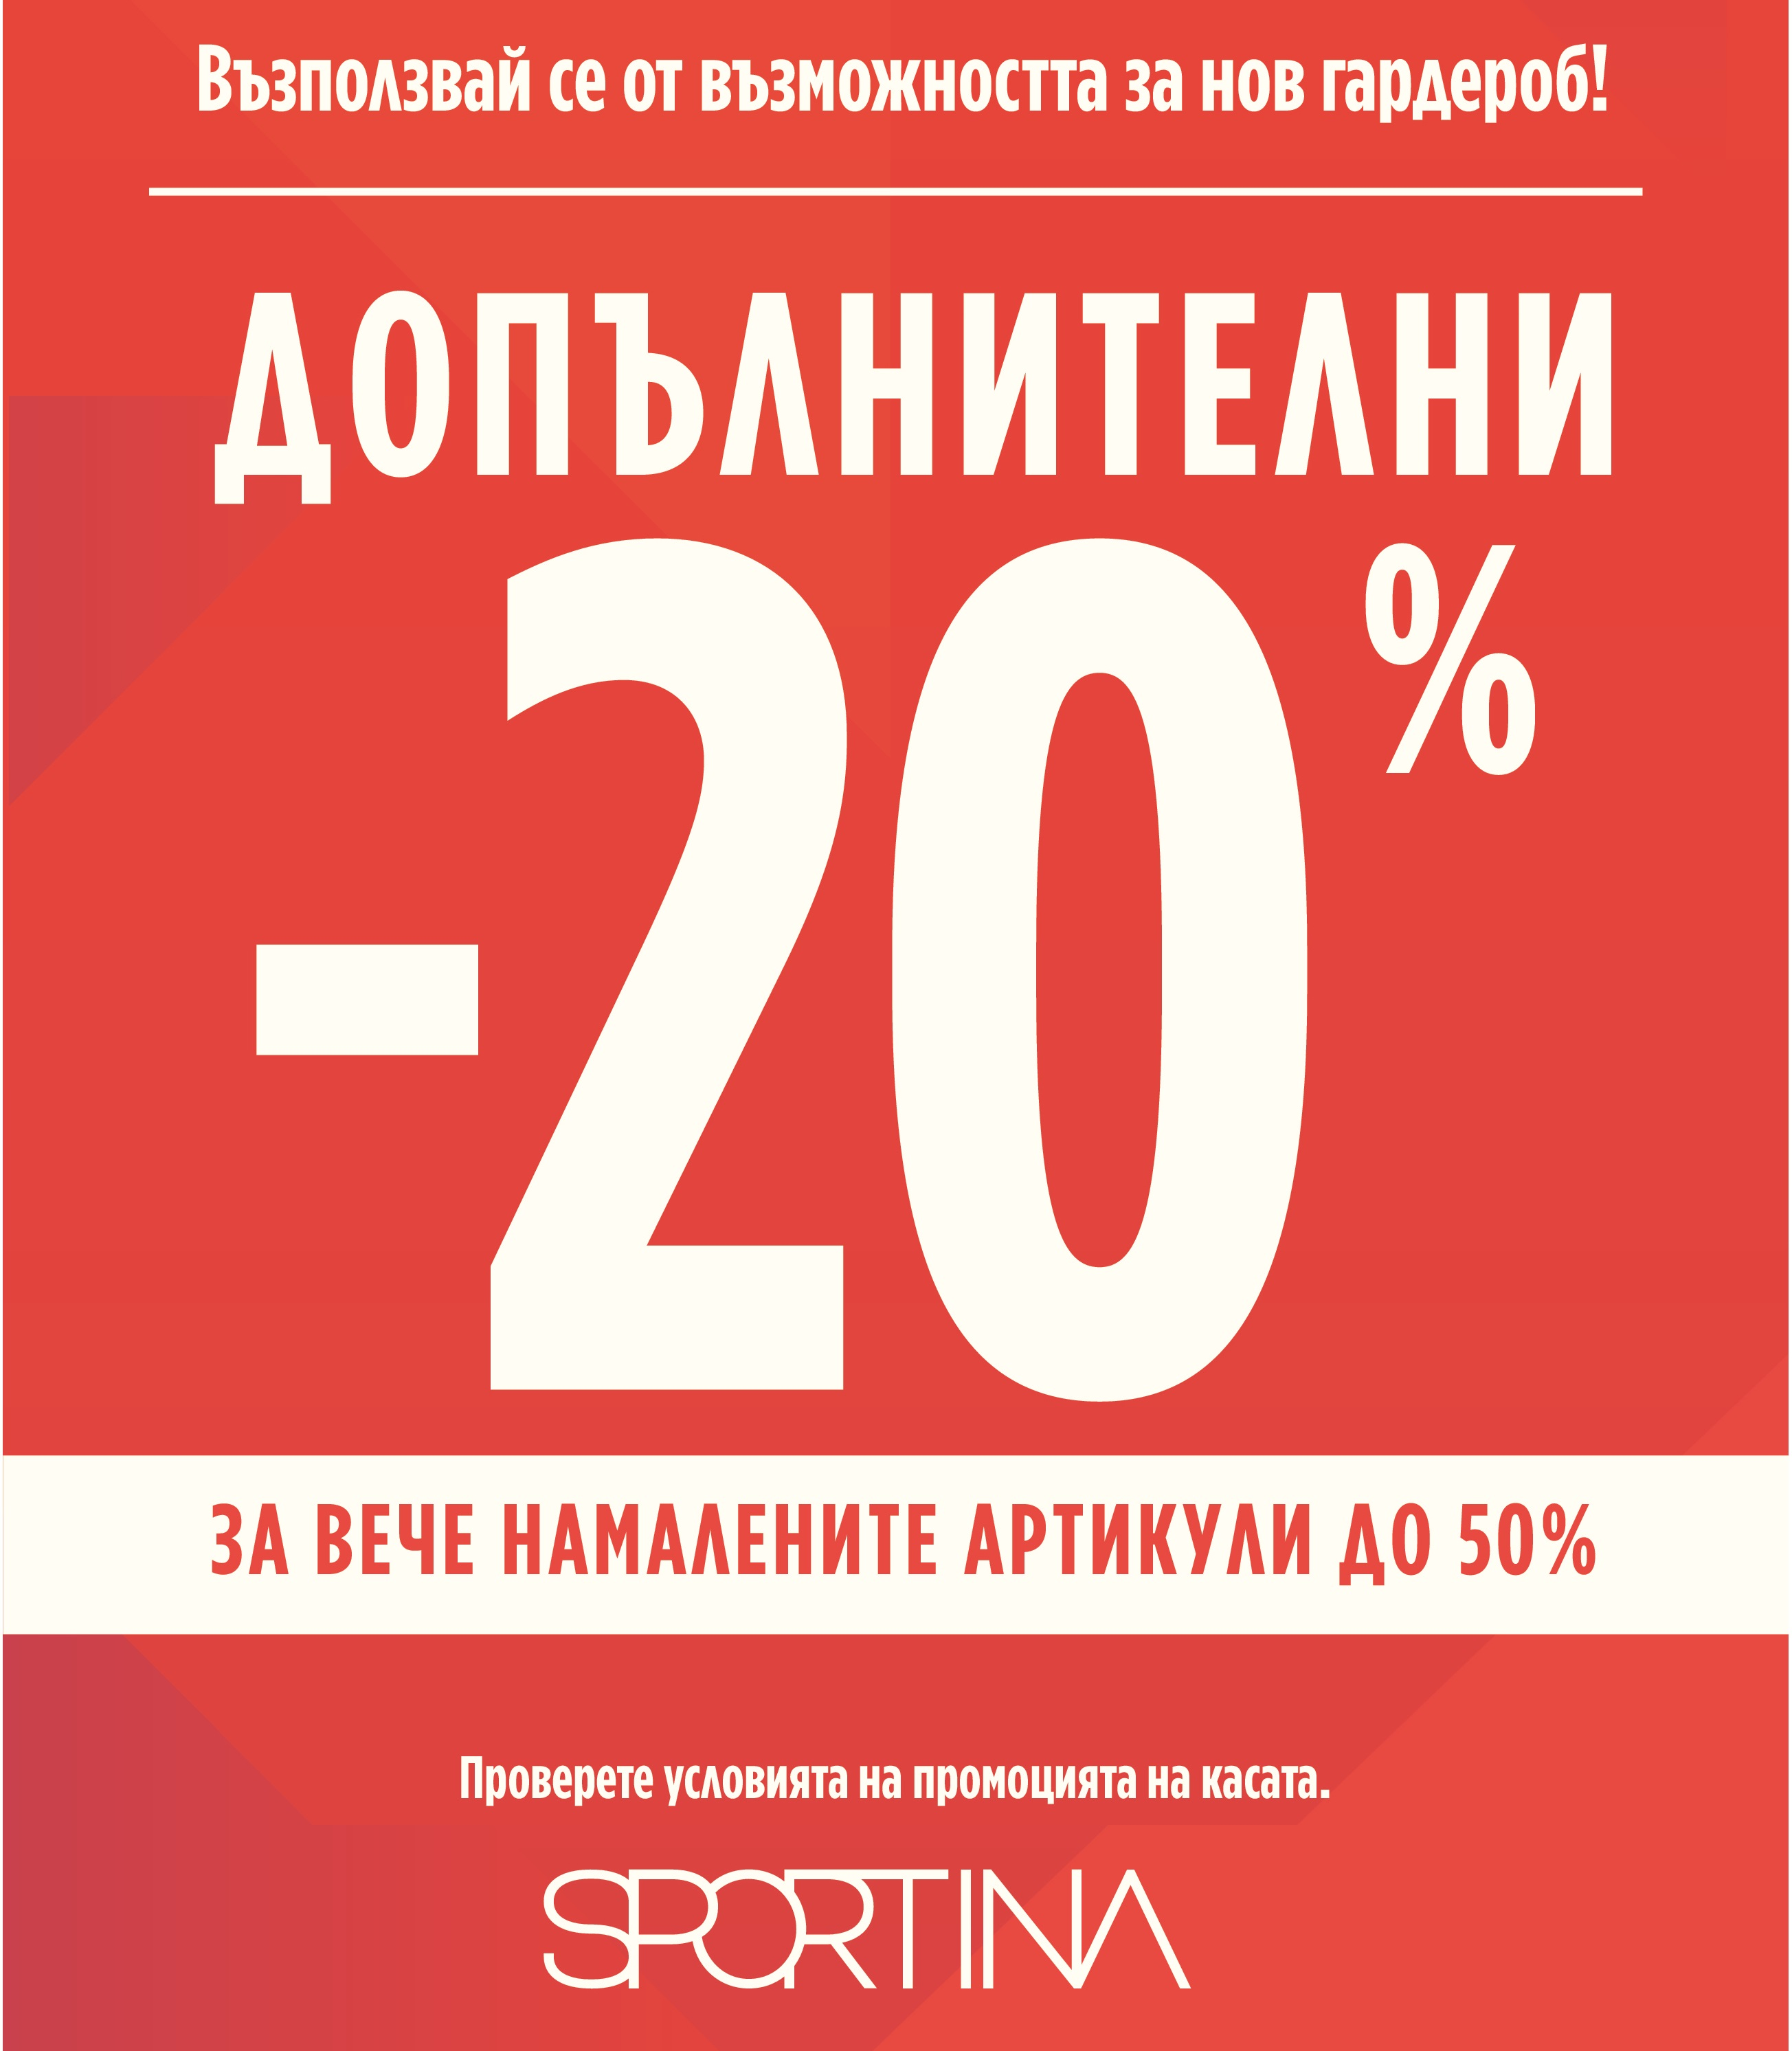 Renew your wardrobe with the discounts at Sportina